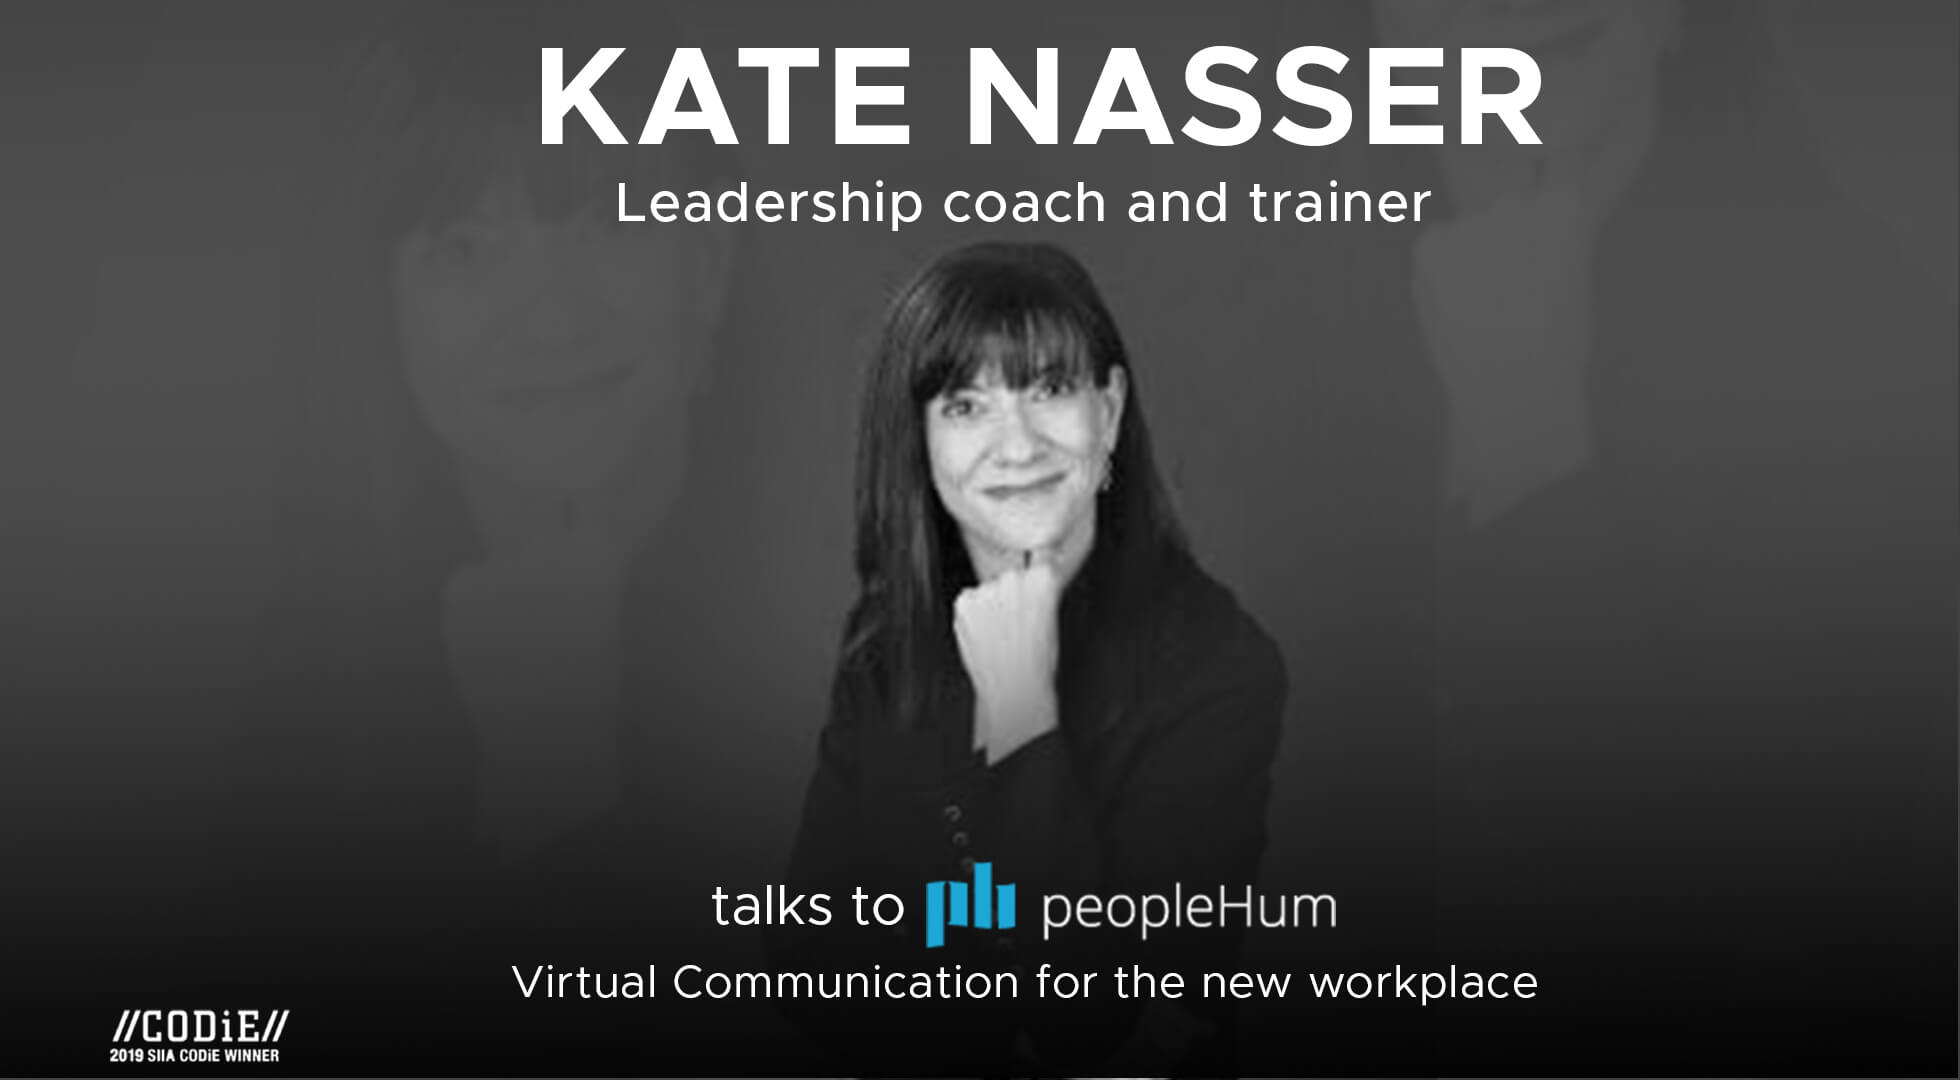 Remote working to virtual working - Kate Nasser [Interview]